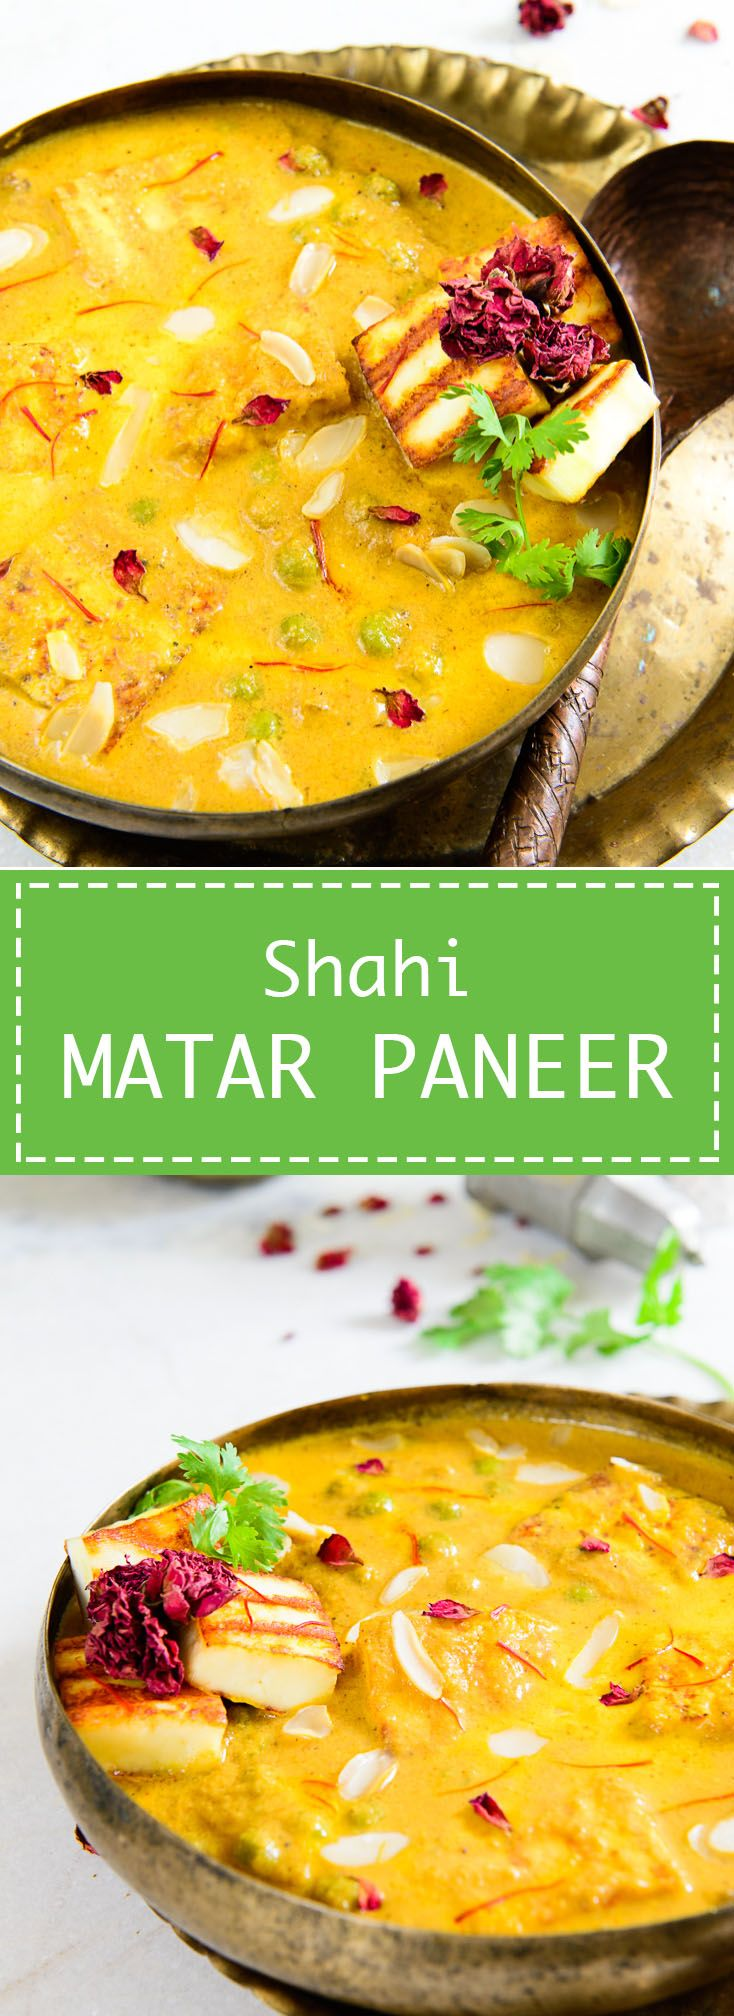 199 best indian paneer images on pinterest indian recipes cooking shahi matar paneer a rich and creamy vegetarian indian curry which can be enjoyed with any forumfinder Gallery